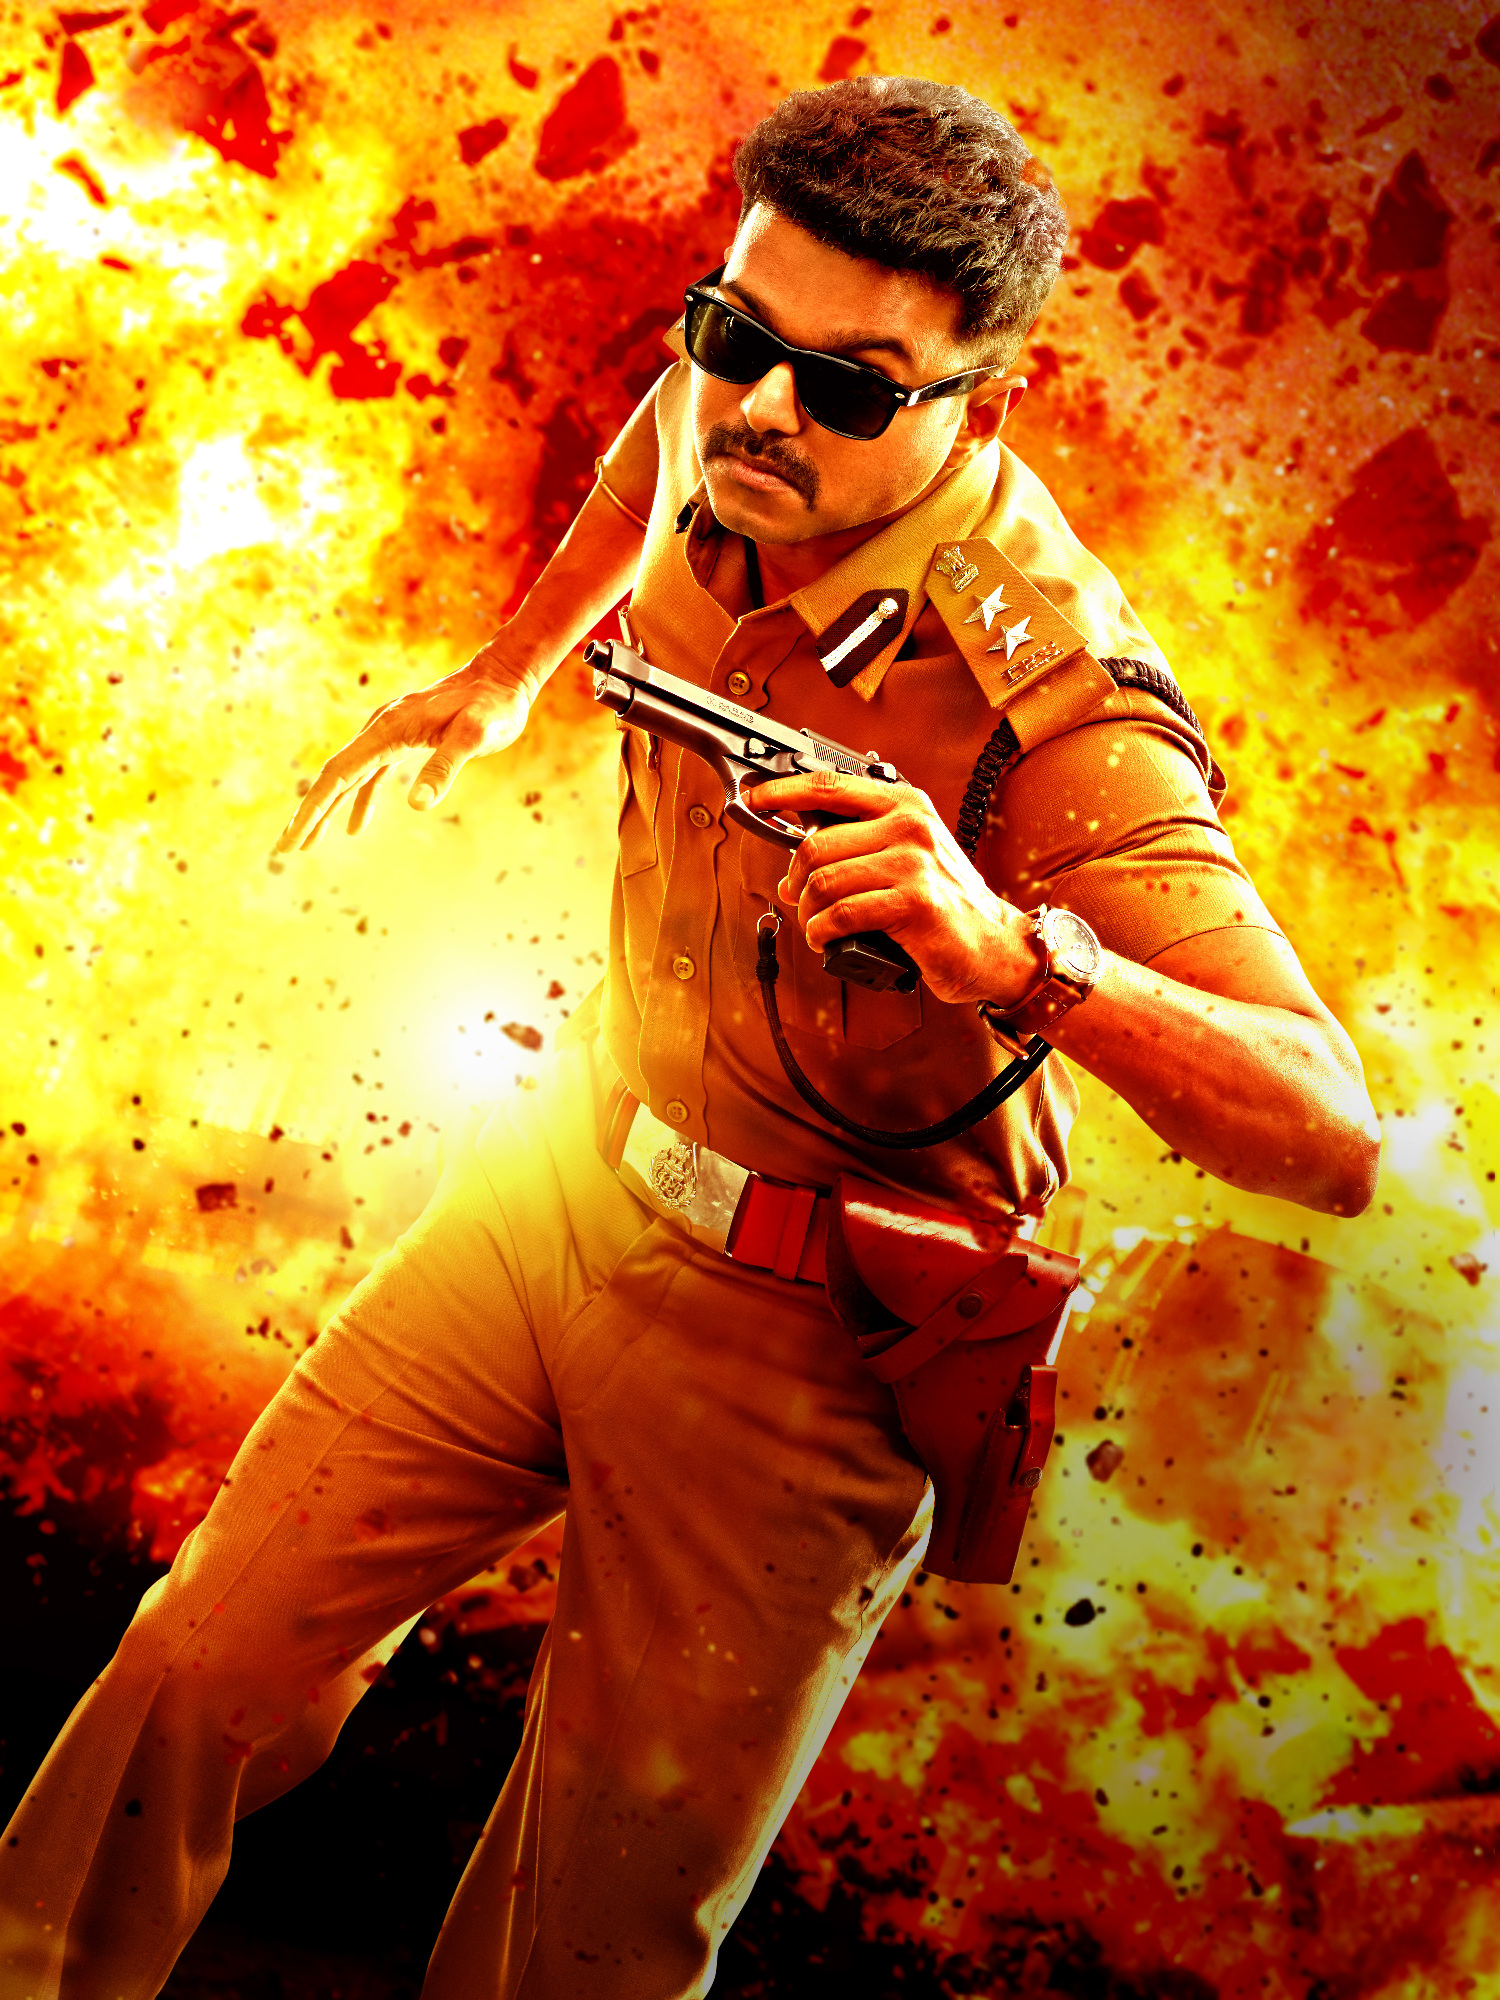 vijay movie theri photo theri on rediff pages